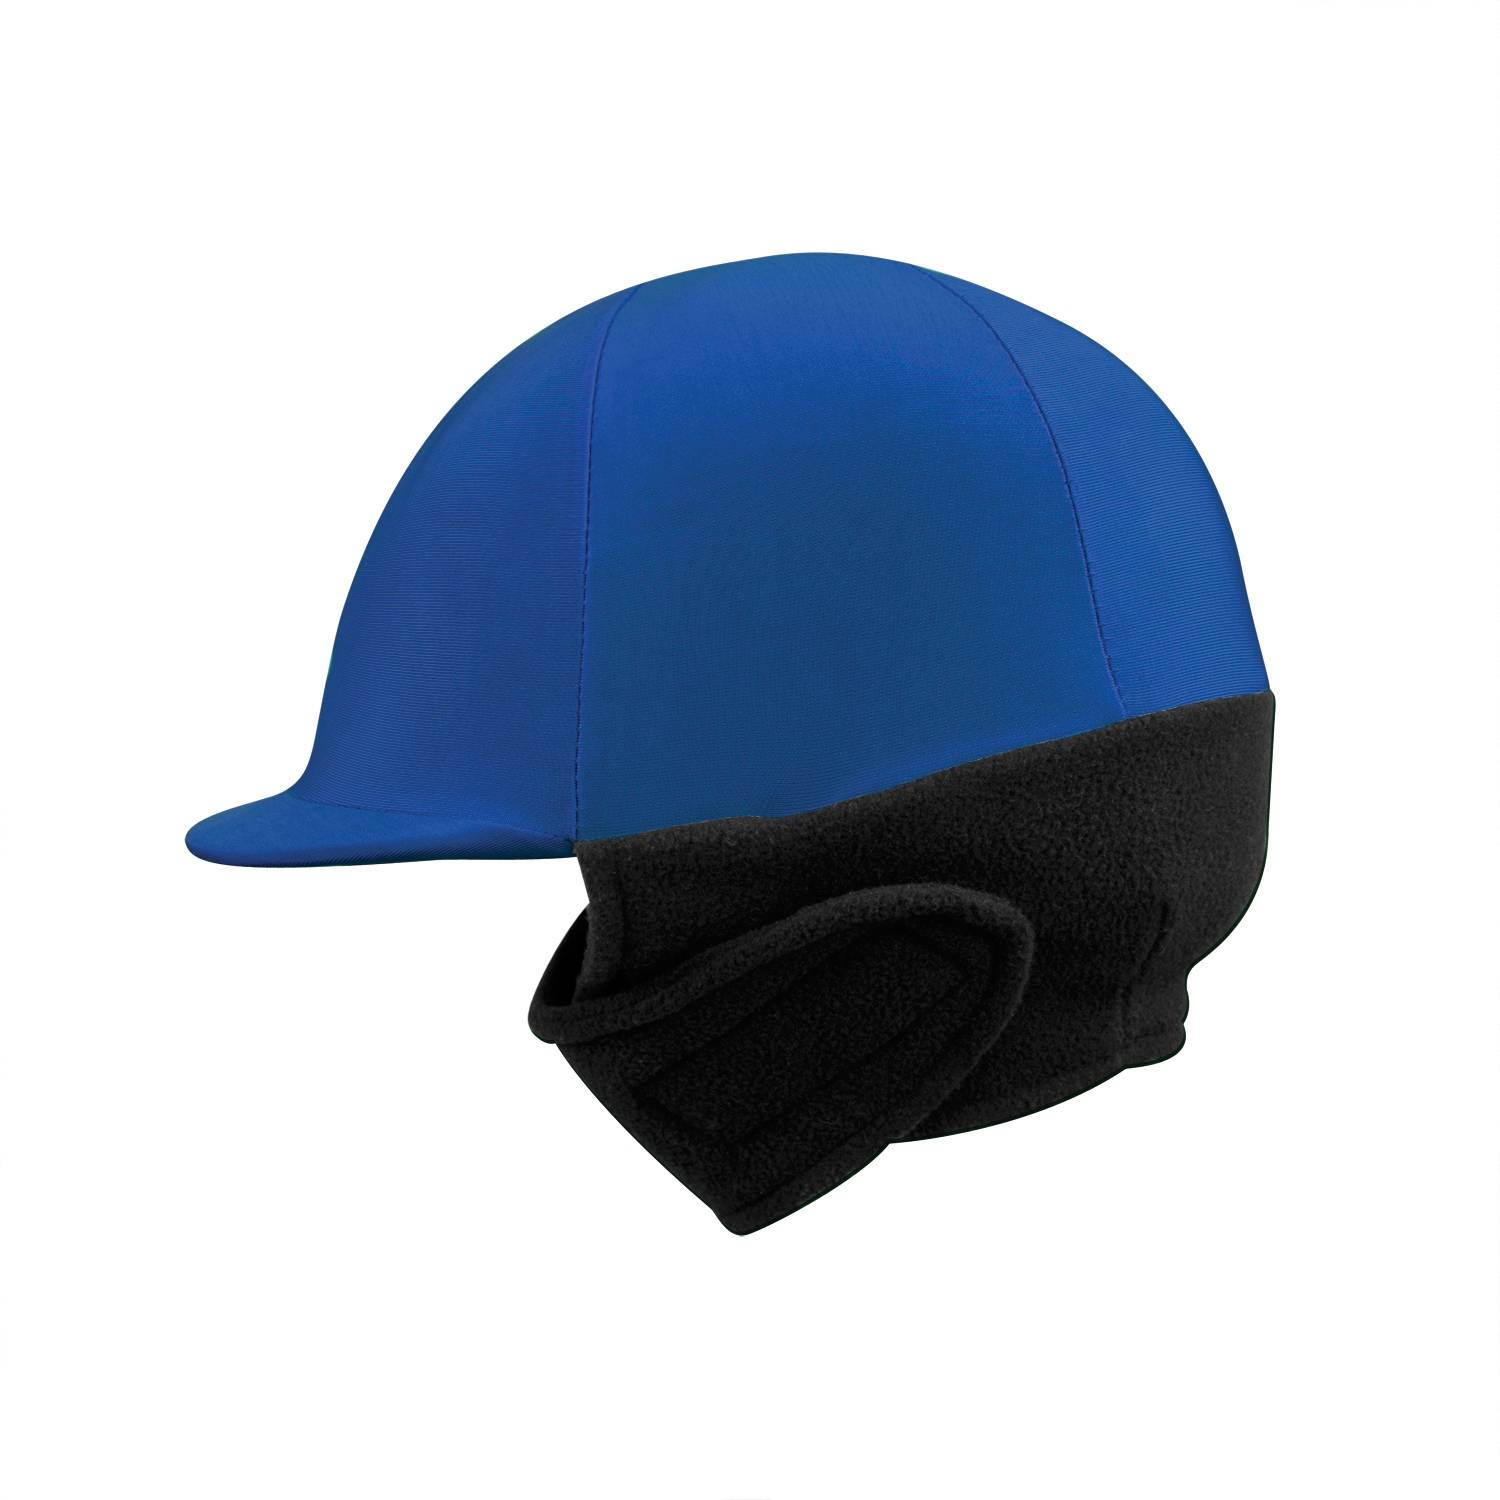 Perri's Winter Helmet Cover